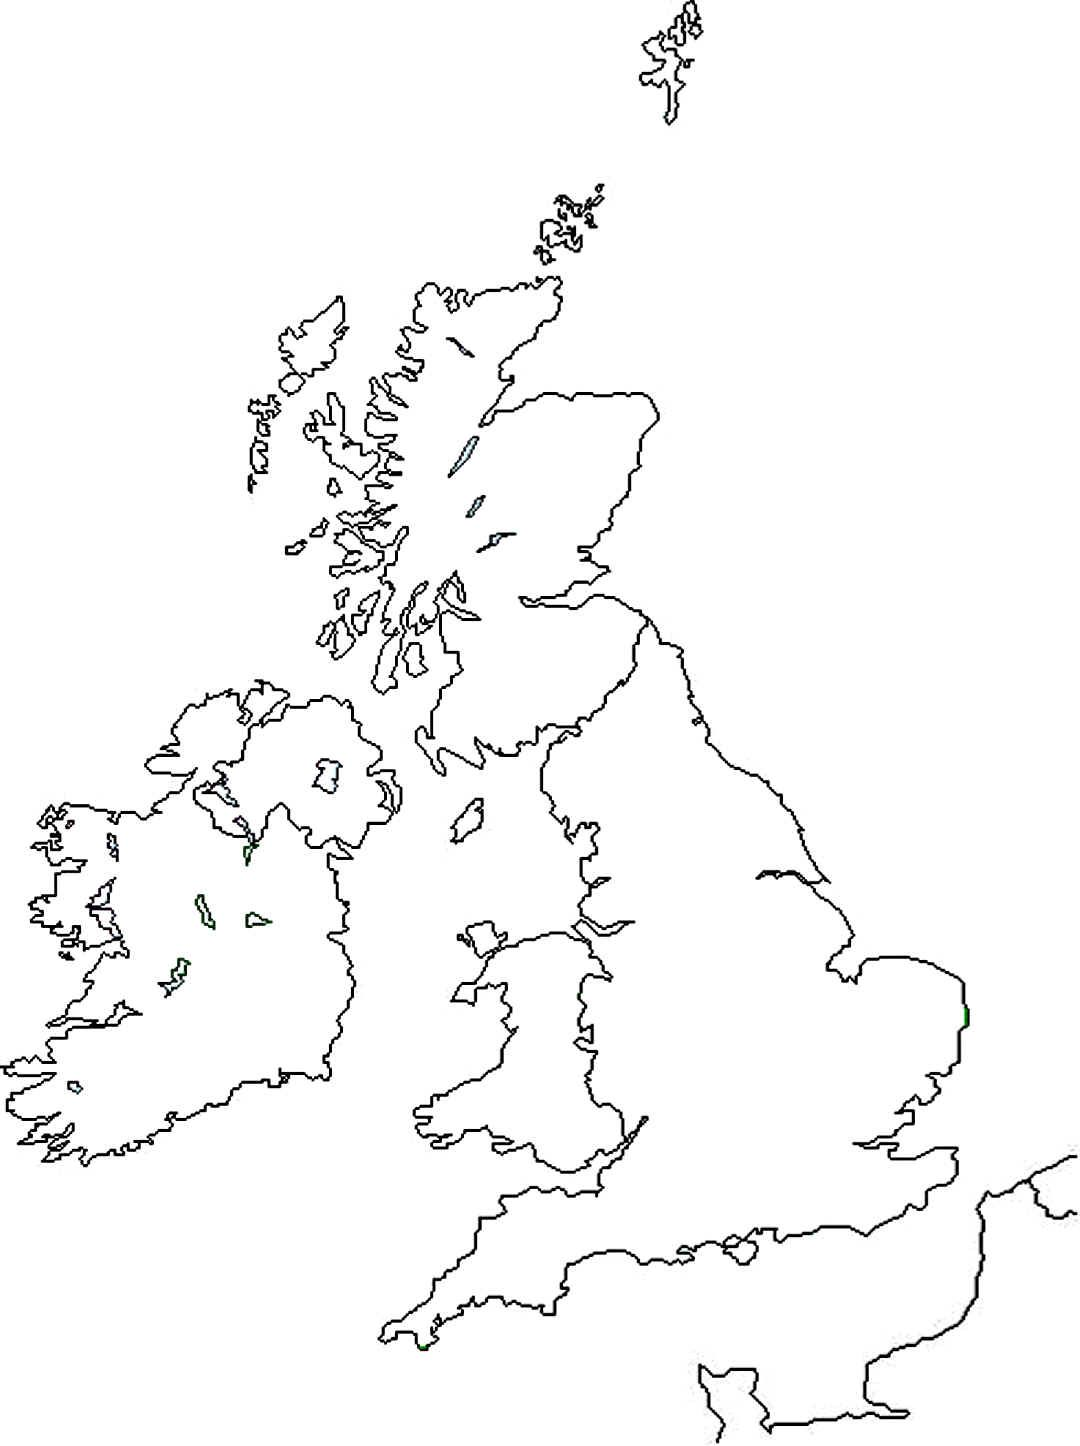 Outline United Kingdom Colouring Pages Road Trip Europe British